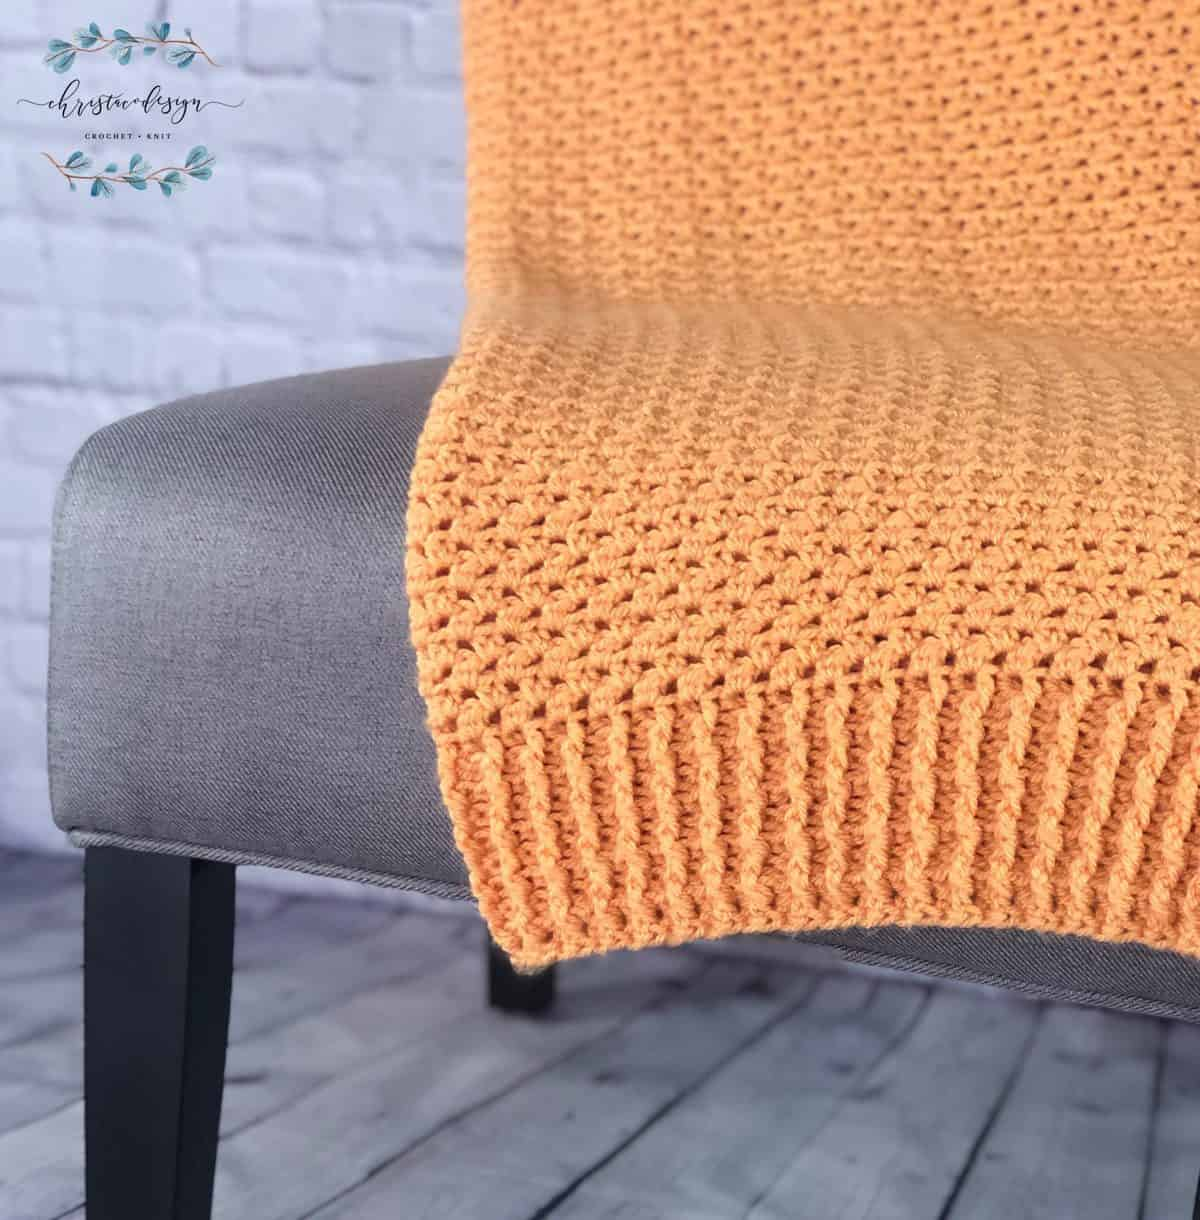 Orange crochet blanket with ribbed edging on grey chair.